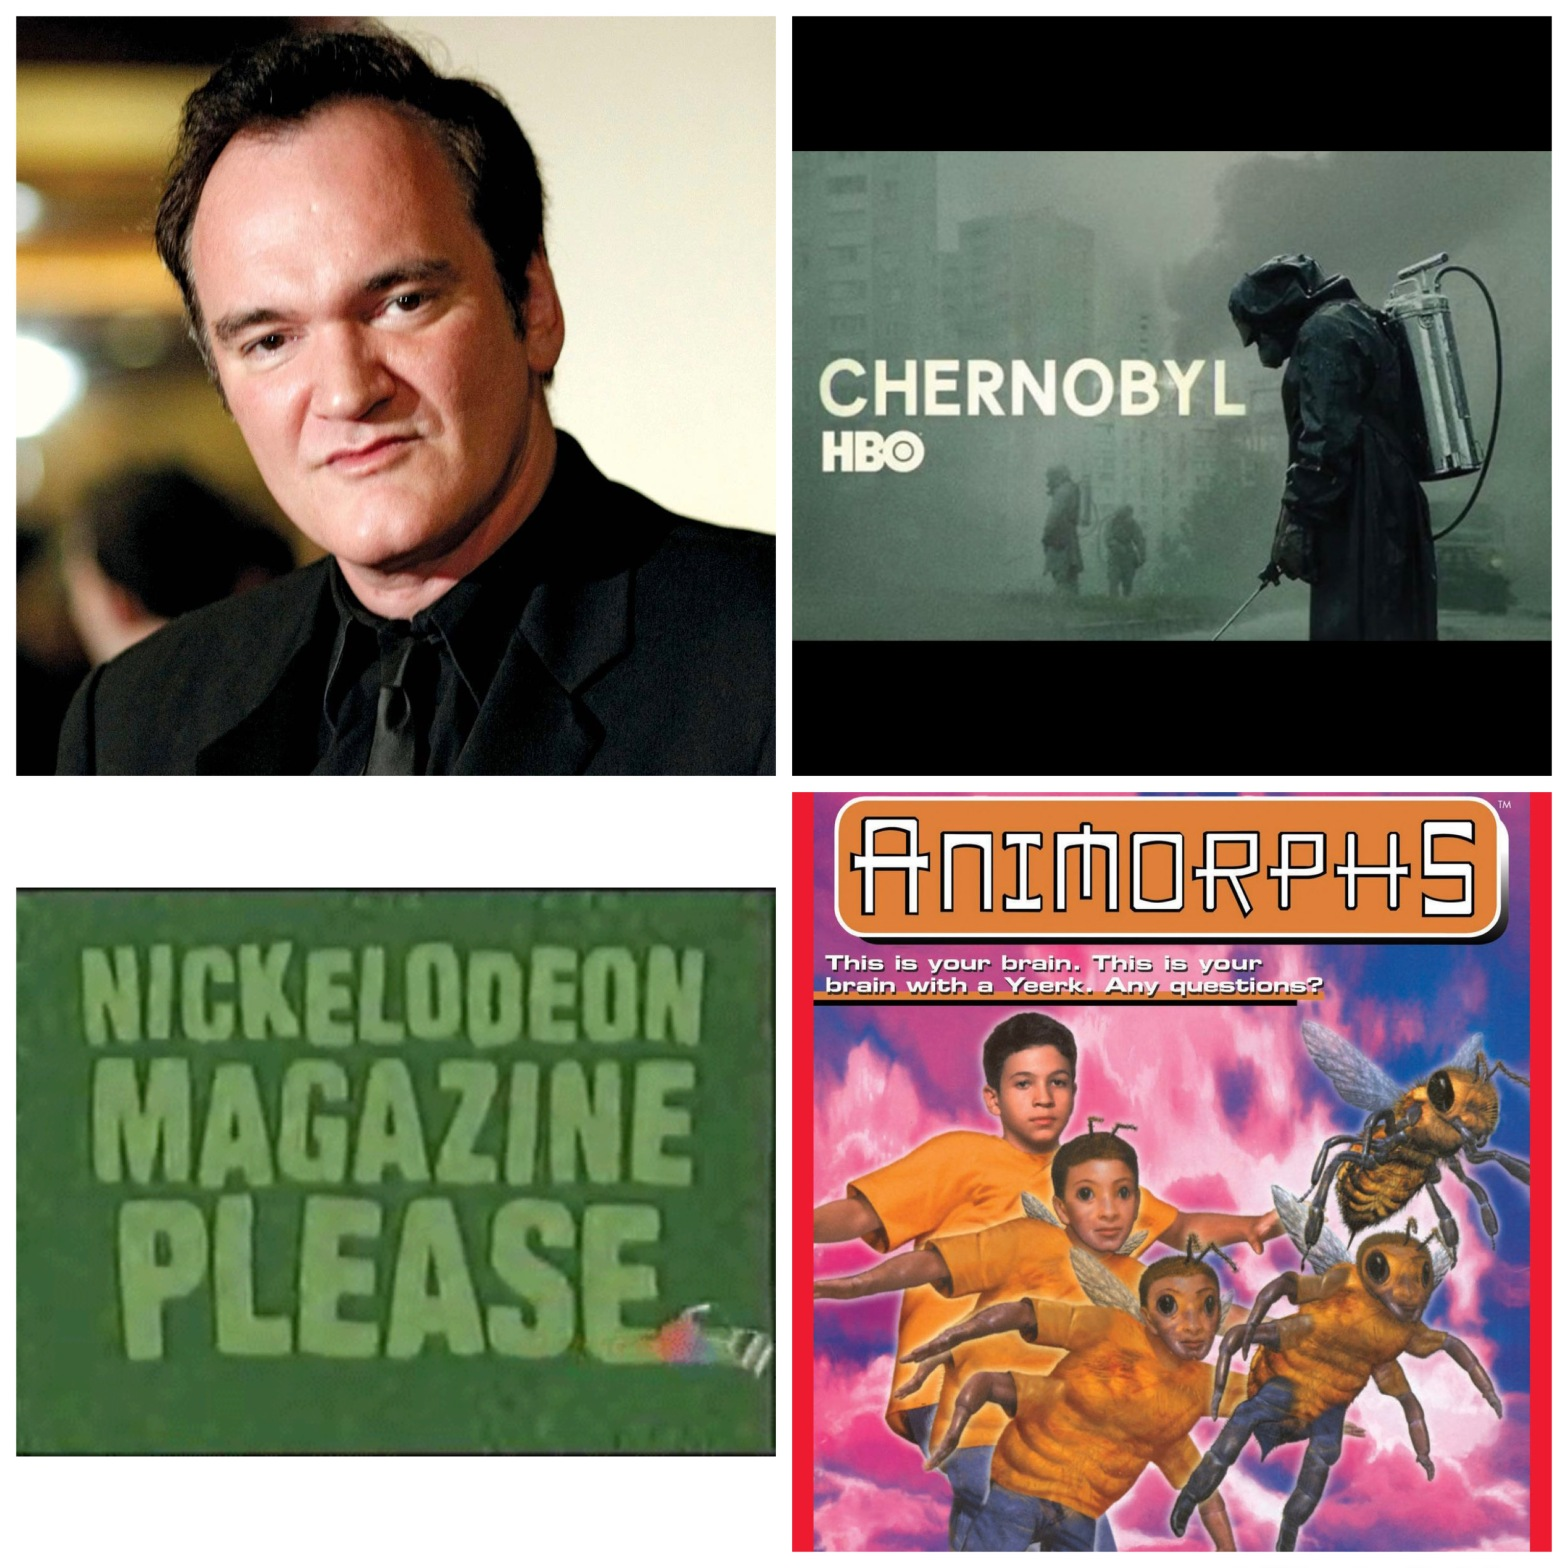 Quentin Tarantino, HBO's Chernobyl, the Nickelodeon Magazine commercial, and an Animorphs book.